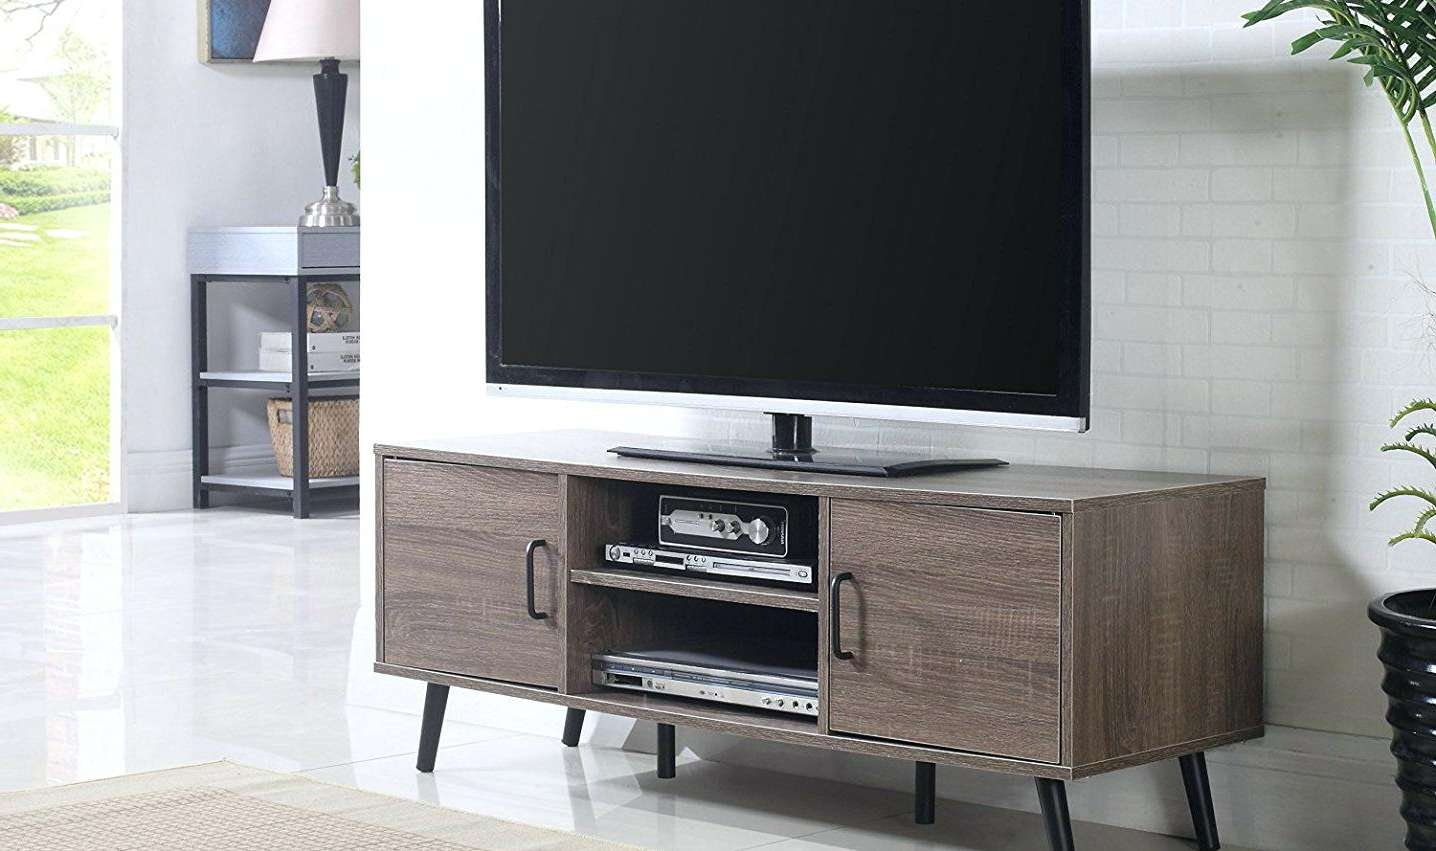 Tv Stand : All Modern Tv Stand People On Home Decoration 2 White With All Modern Tv Stands (View 8 of 20)